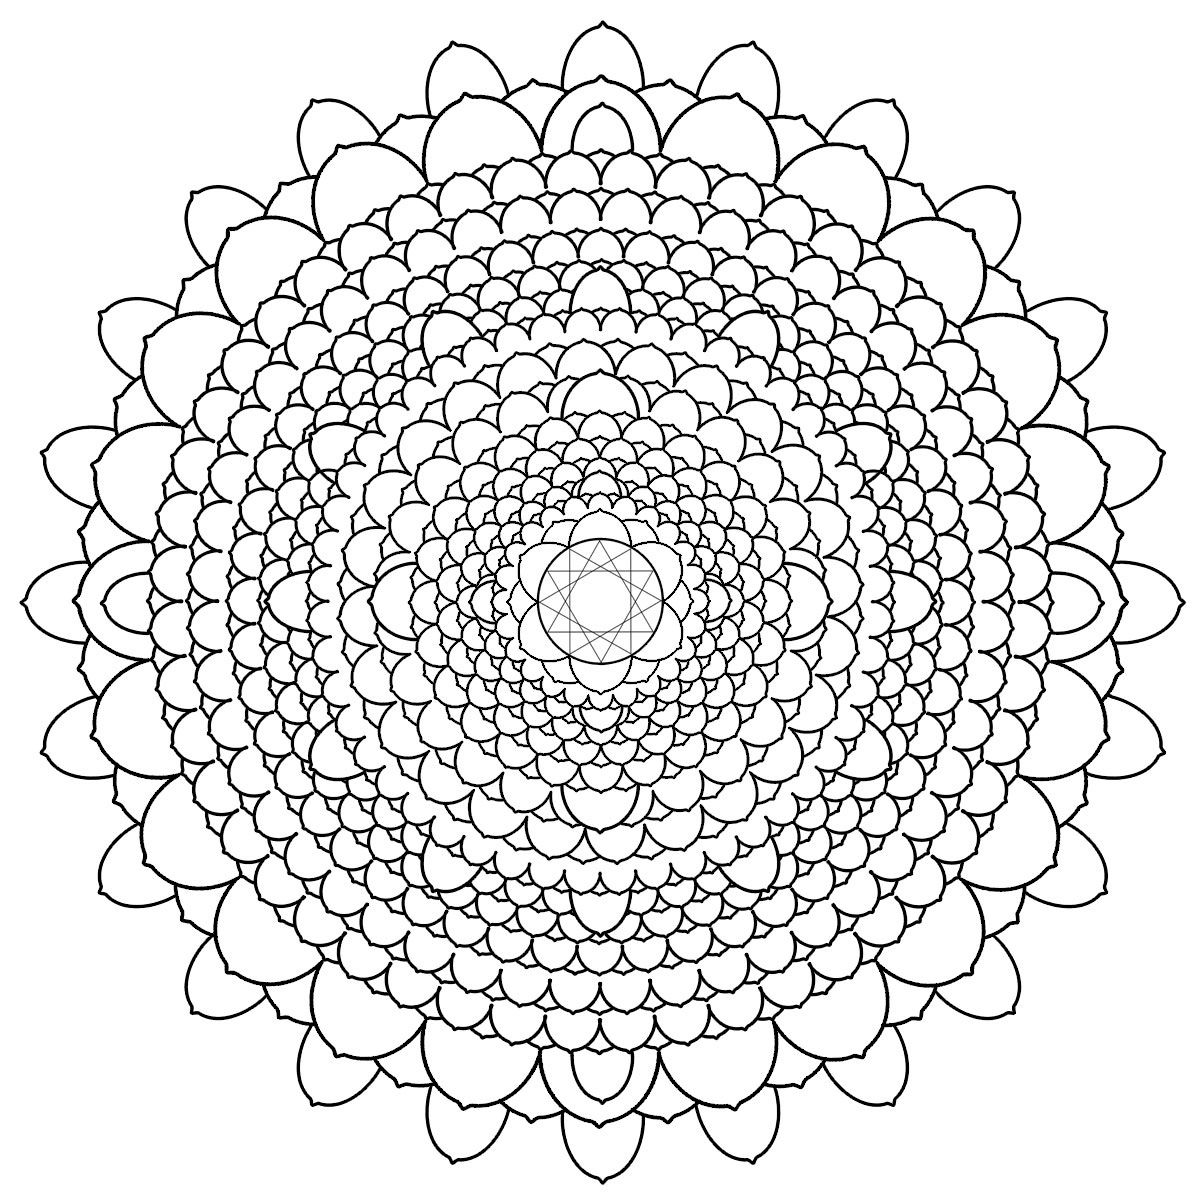 Free Mandala Coloring Pages For Adults at GetDrawings.com ...